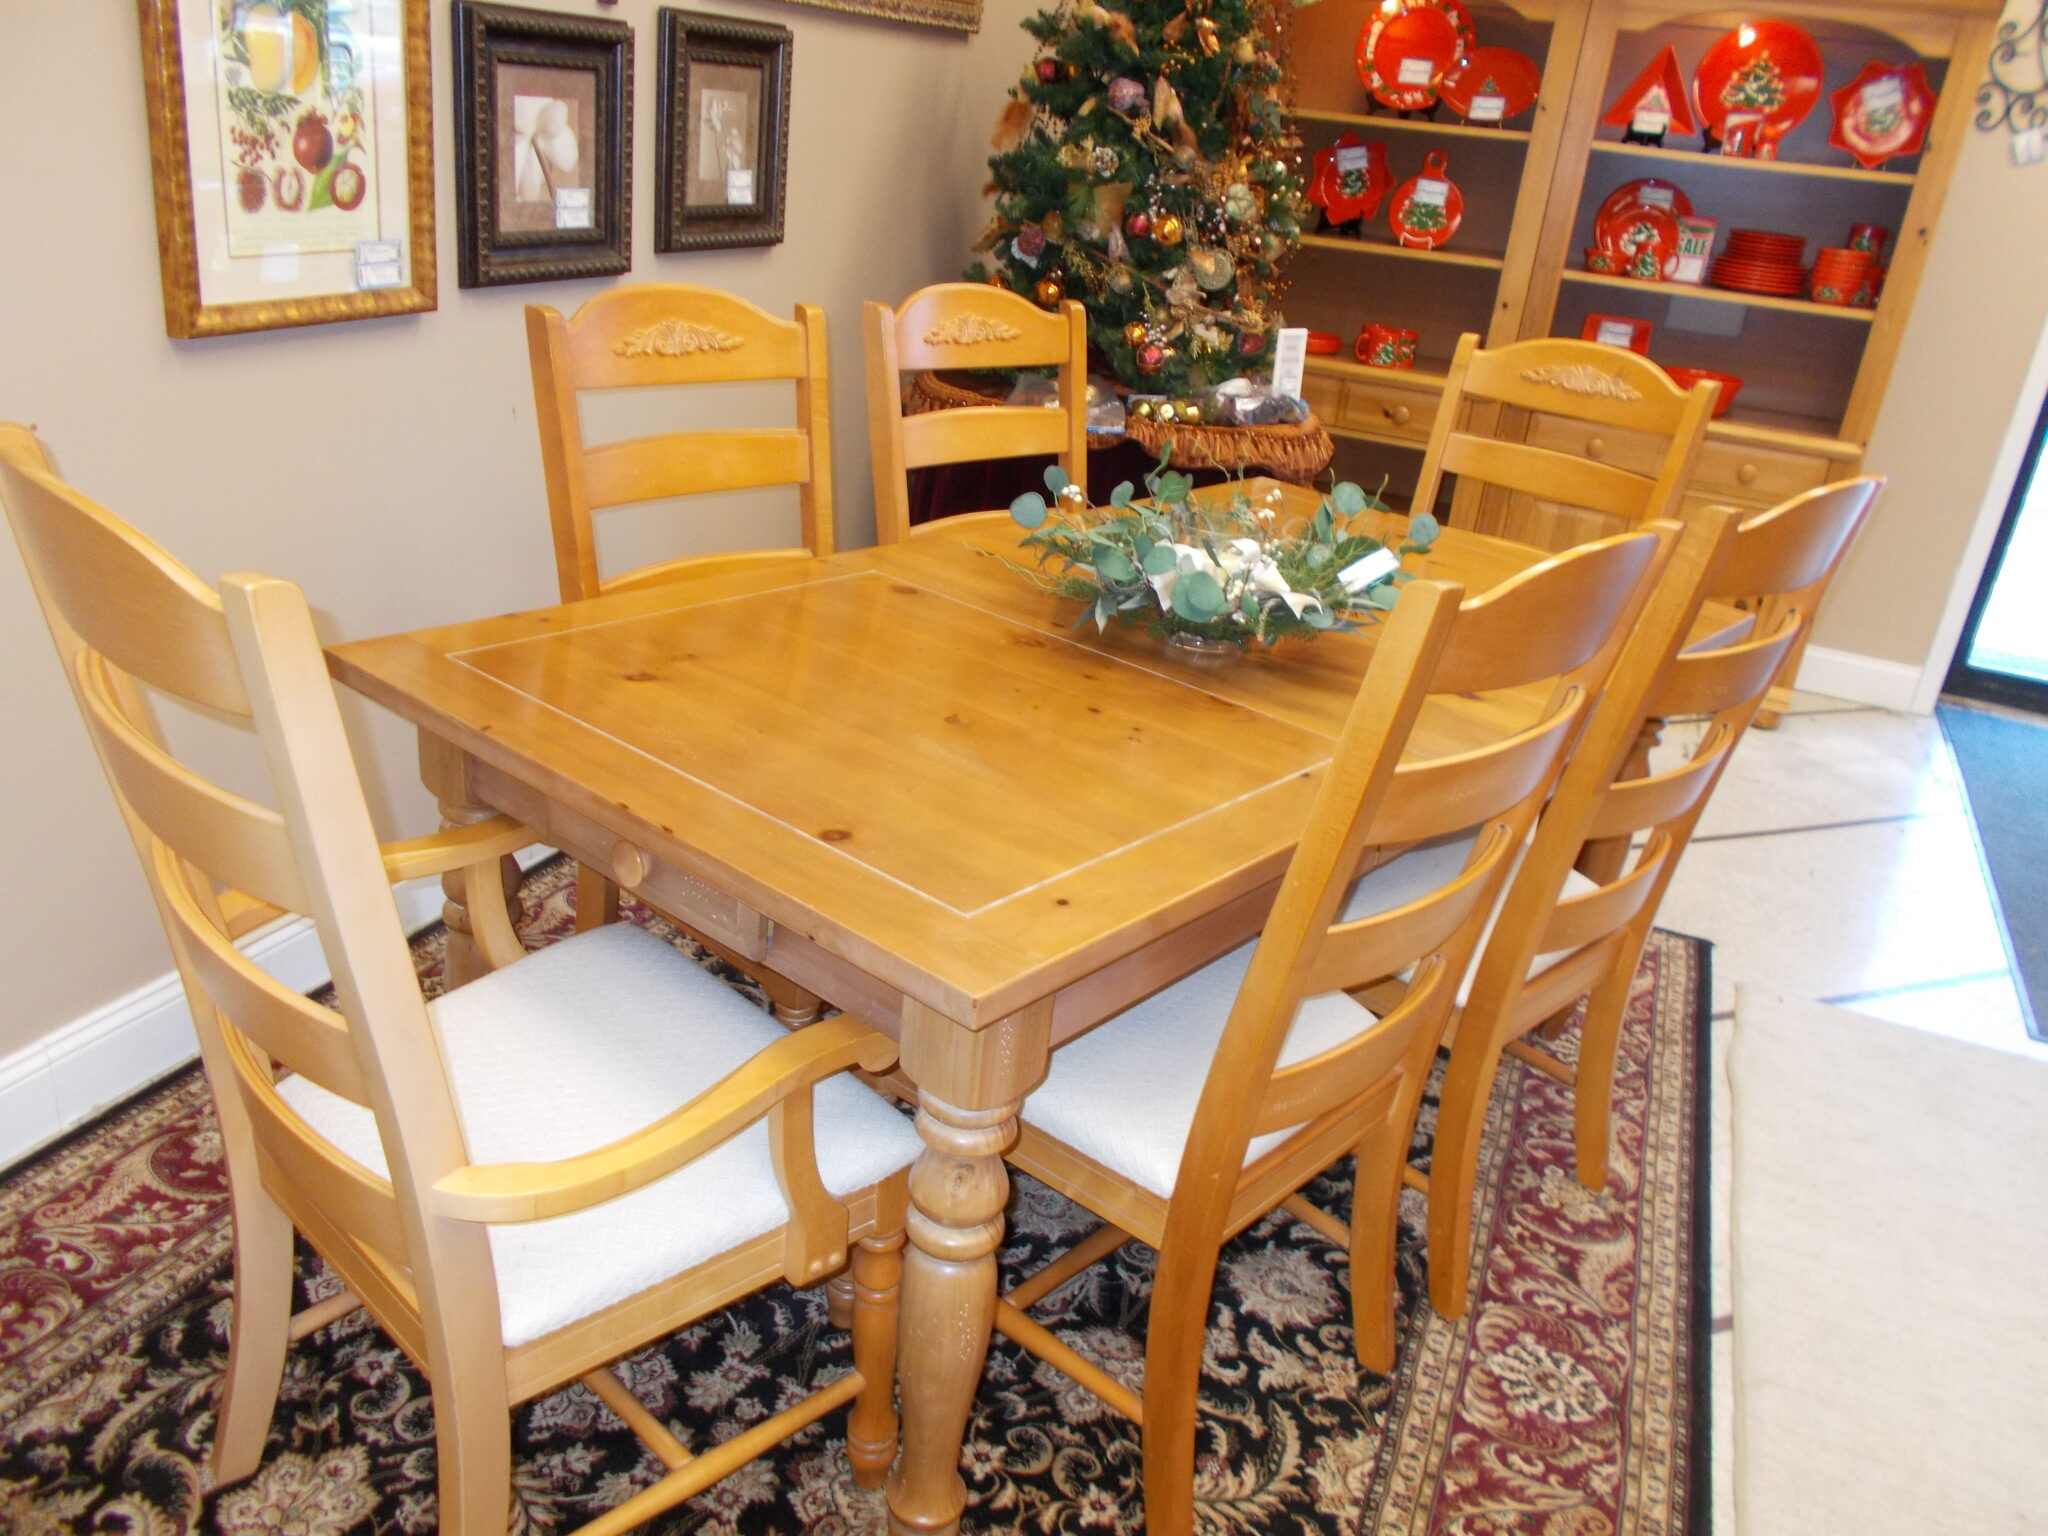 Broyhill Dining Table 60 X 36 2 Arm 4 Side Chairs 2 12 Leaves And Pads Upscale Resale Furnishings Of Gahanna